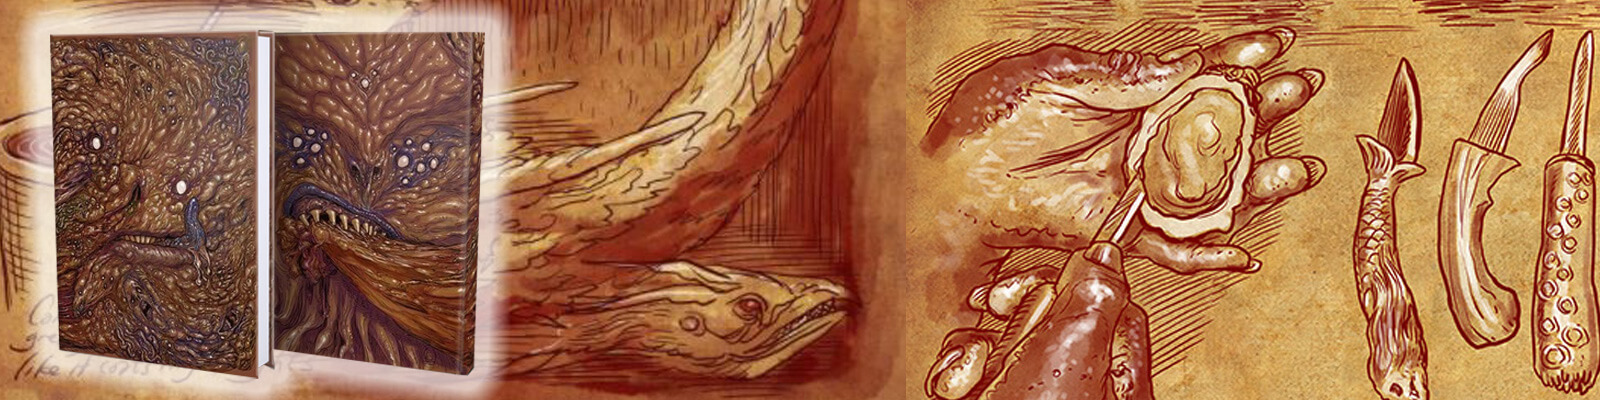 The Necronomnomnom - A Cookbook of Eldritch Horror